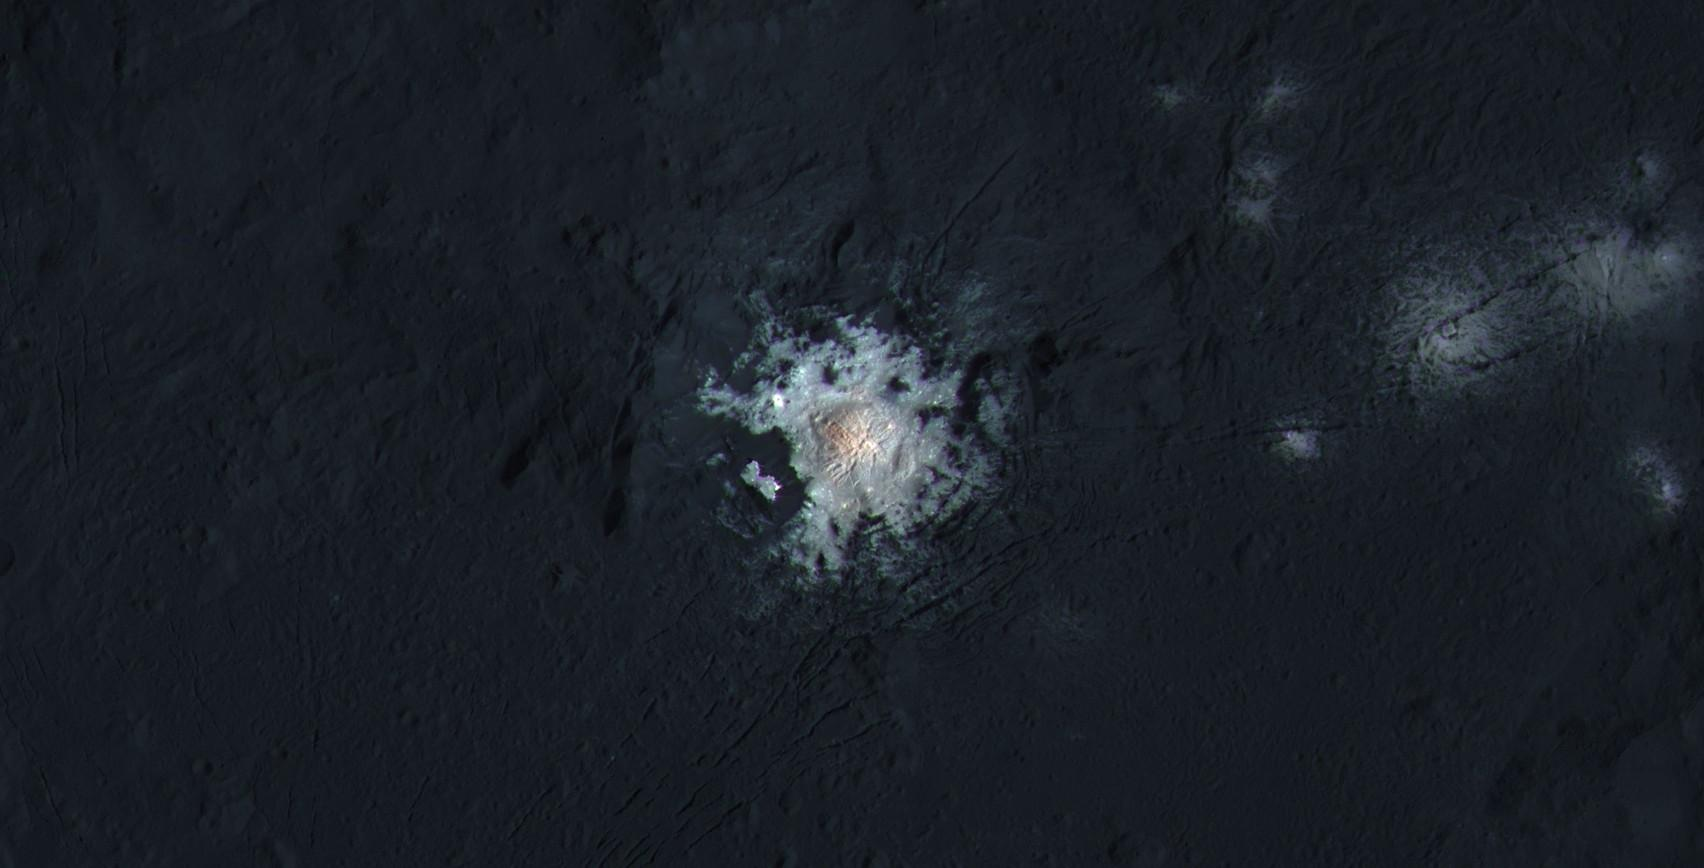 Click to expand this picture of the Occator Crater...